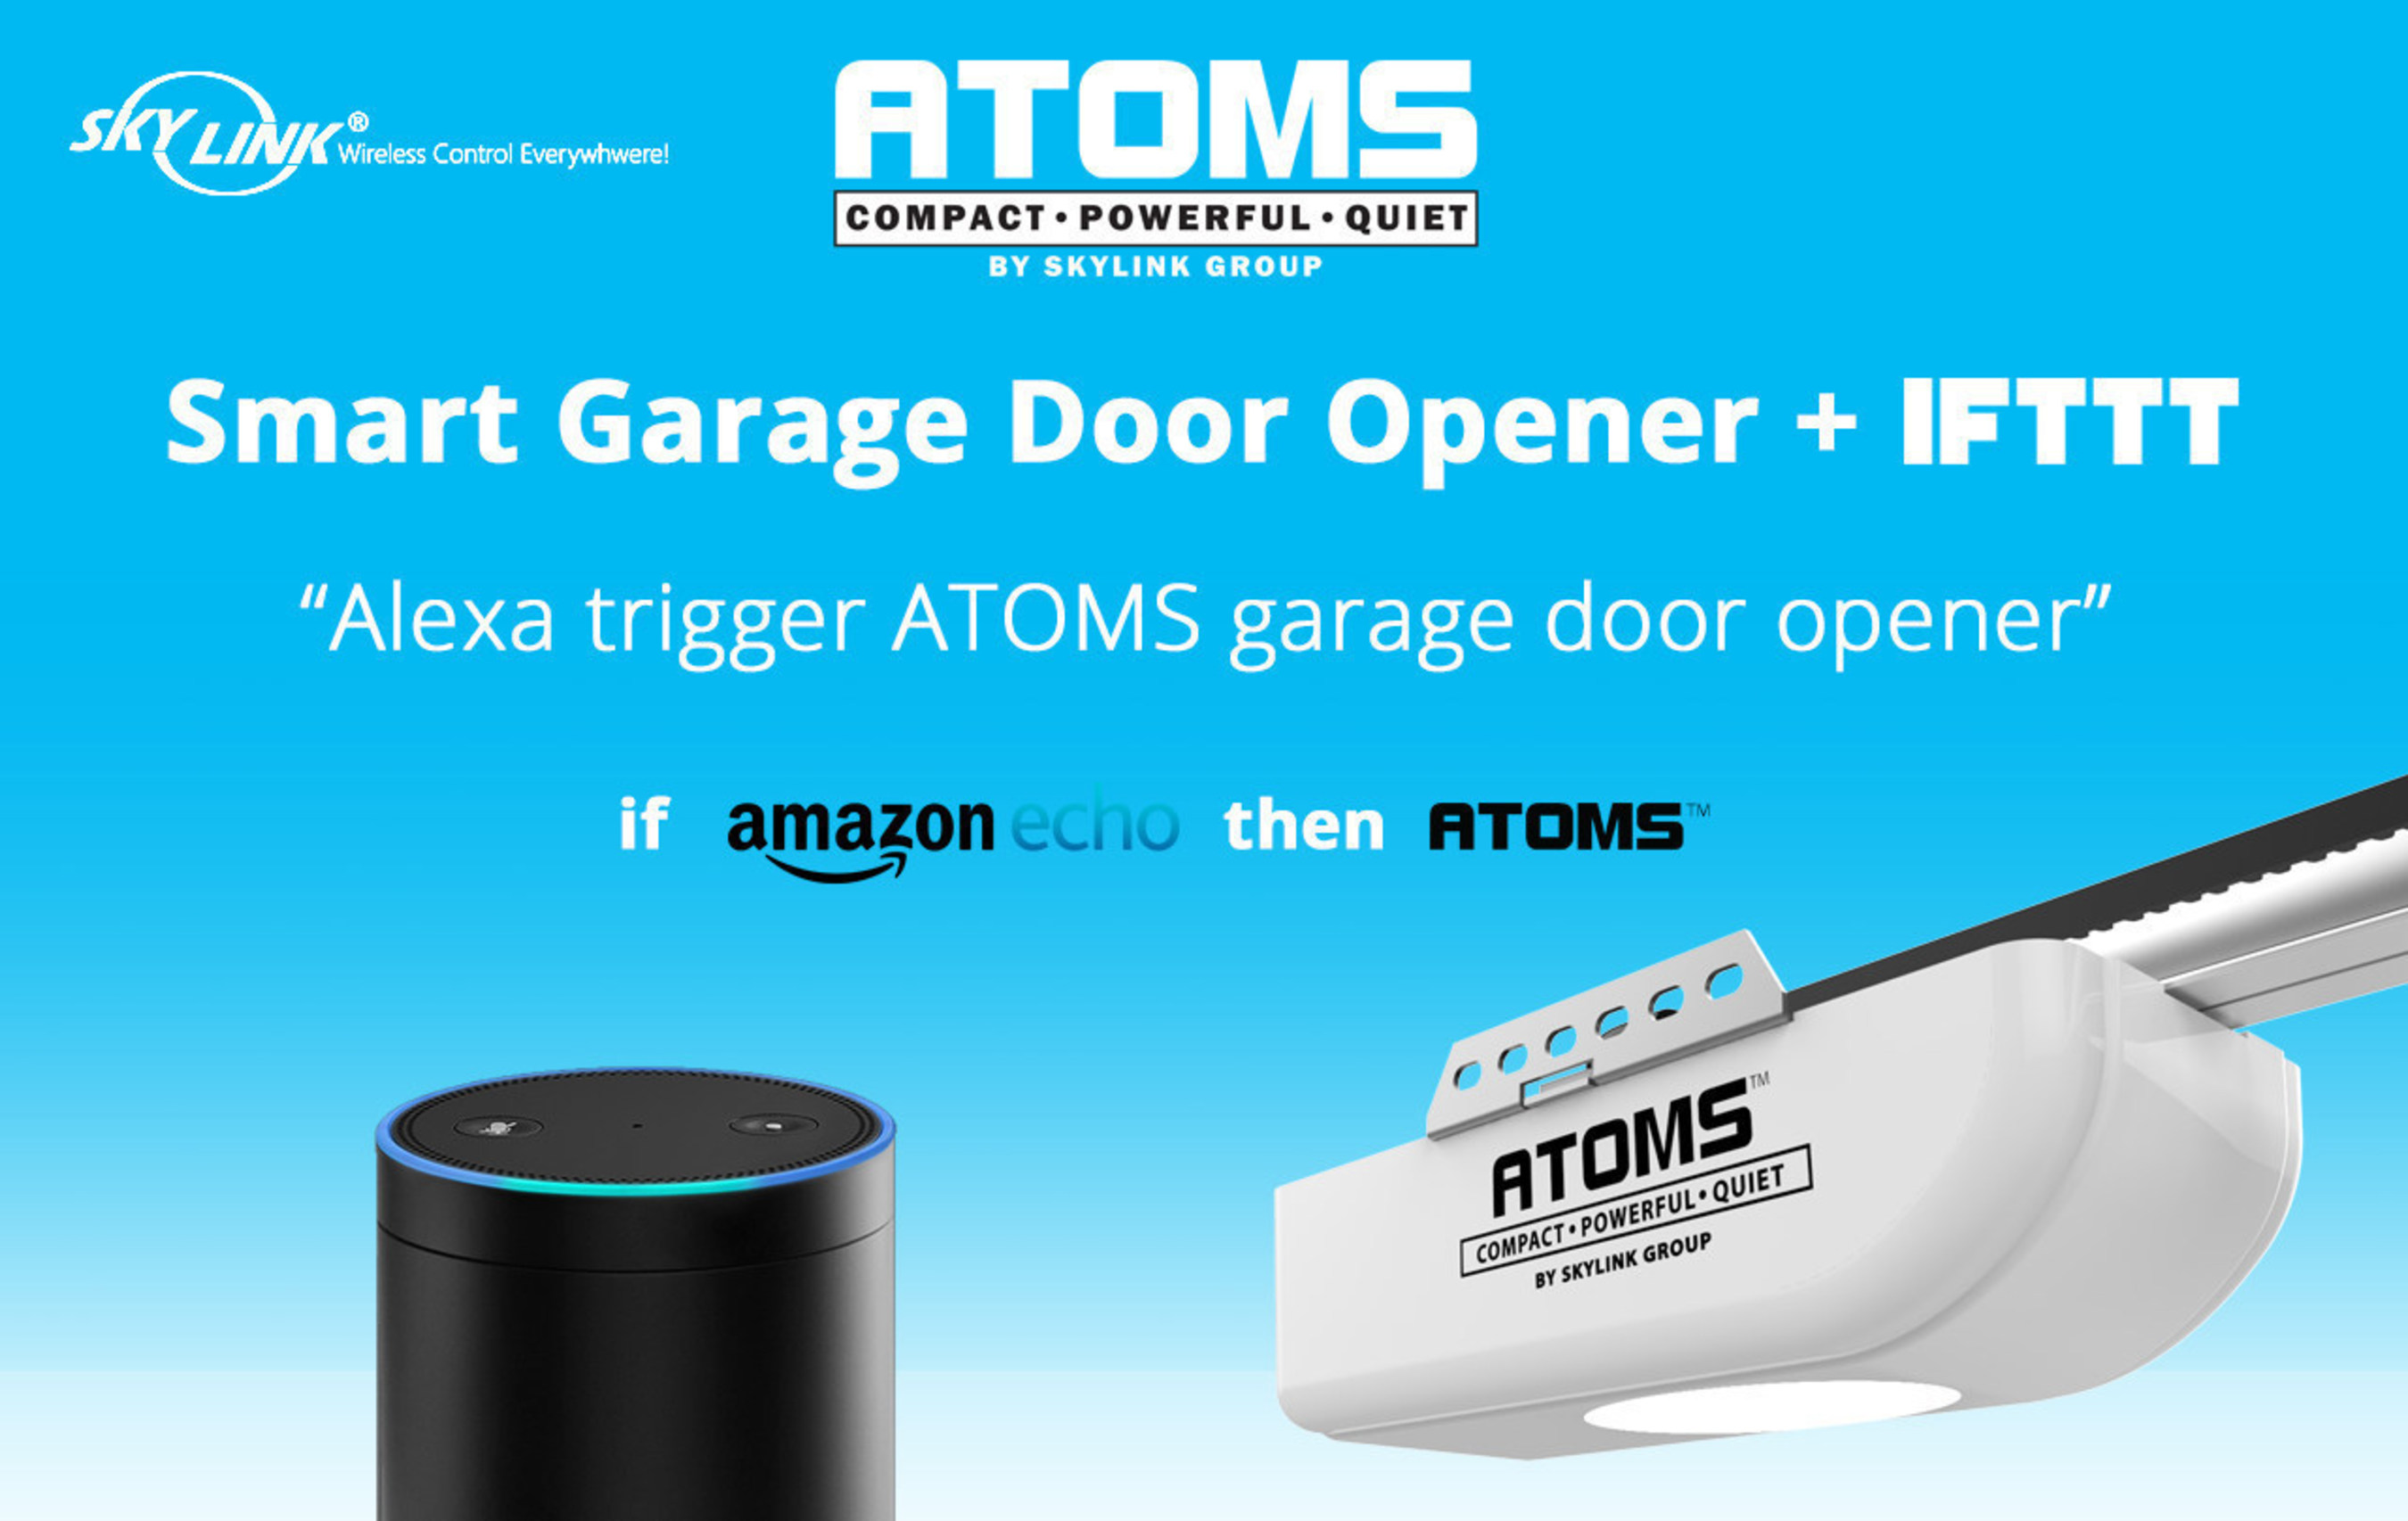 Skylink Announces First IFTTT Compatible Garage Door Opener-ATOMS